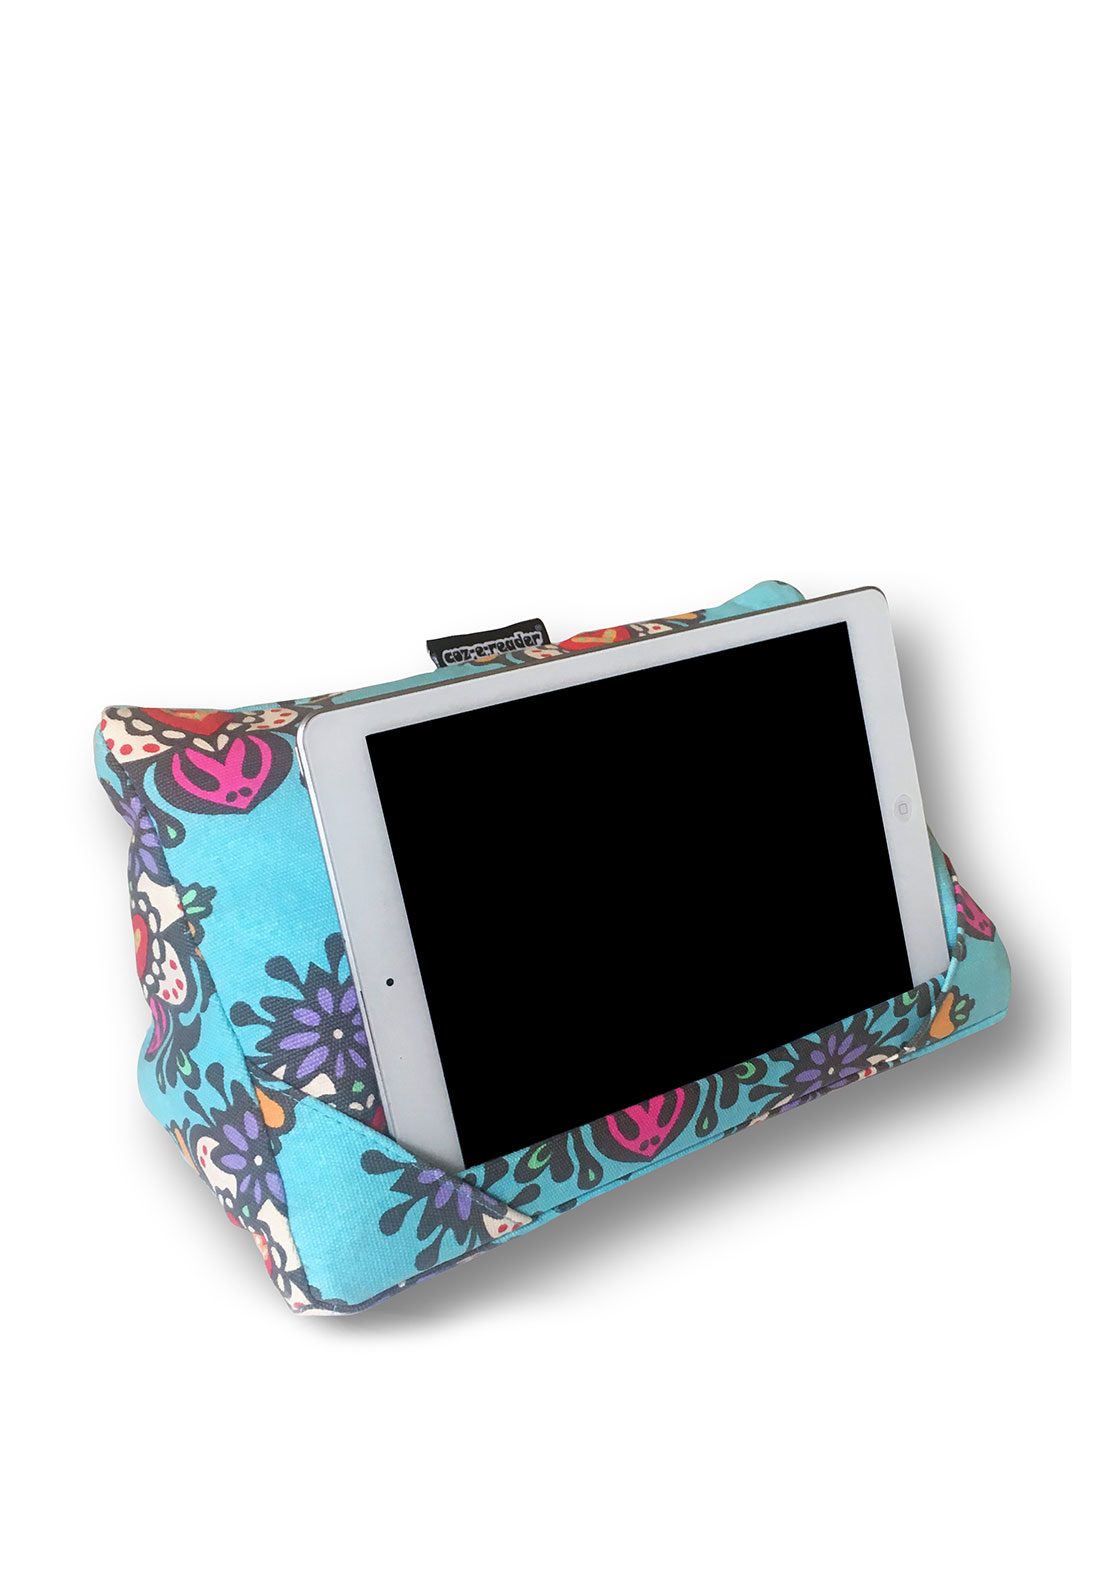 Coz-e-reader Retro Print Tablet Cushion, Blue